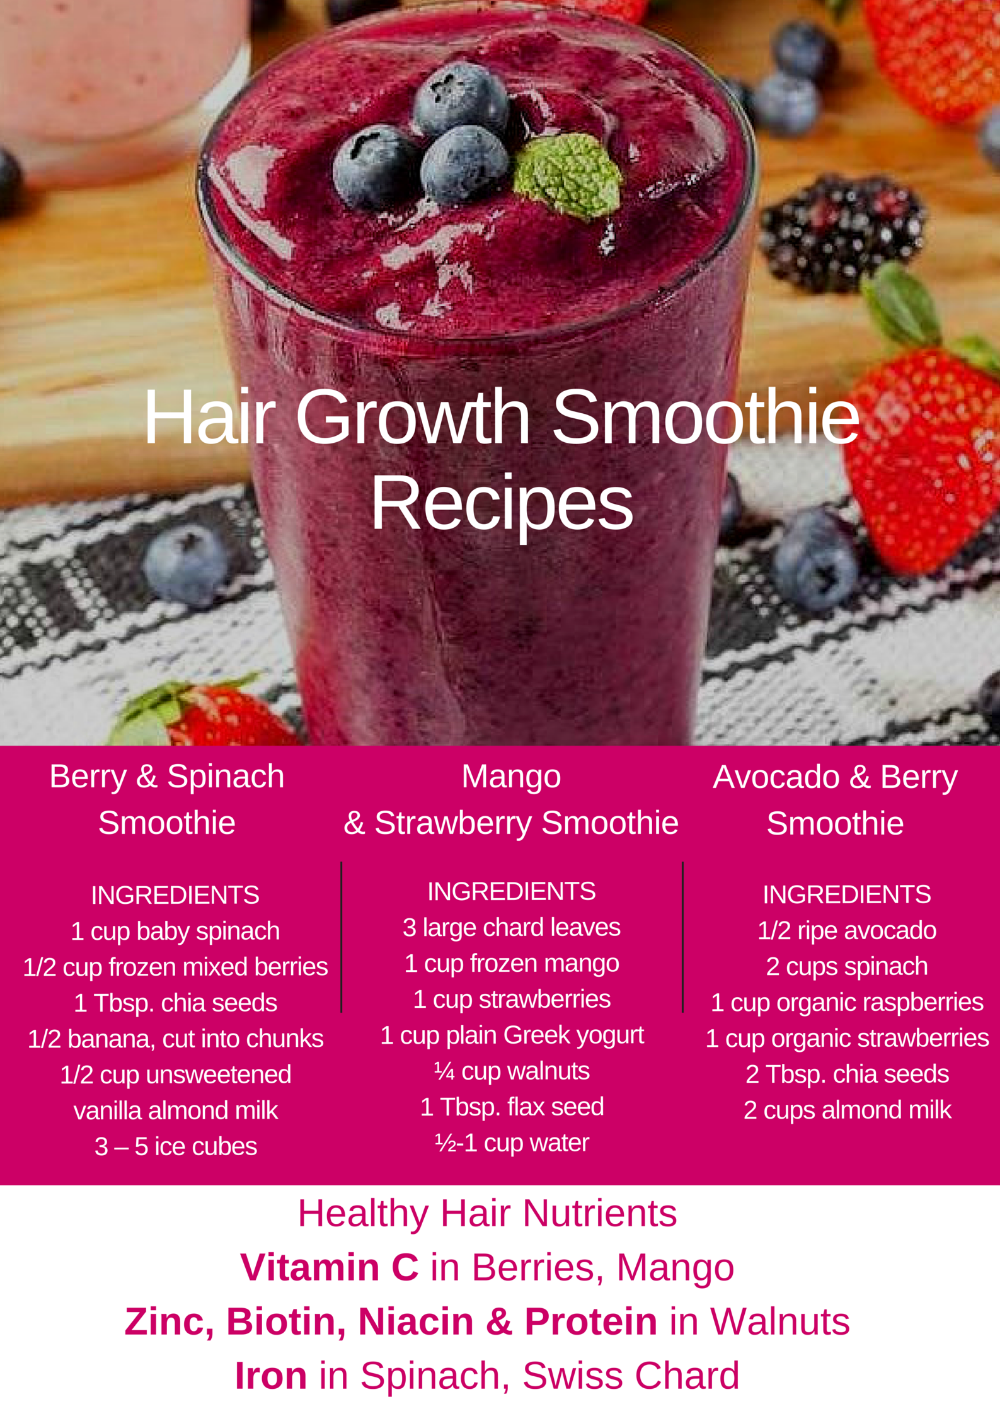 Pin by ZuVero on Health & Fitness Hair growth smoothie